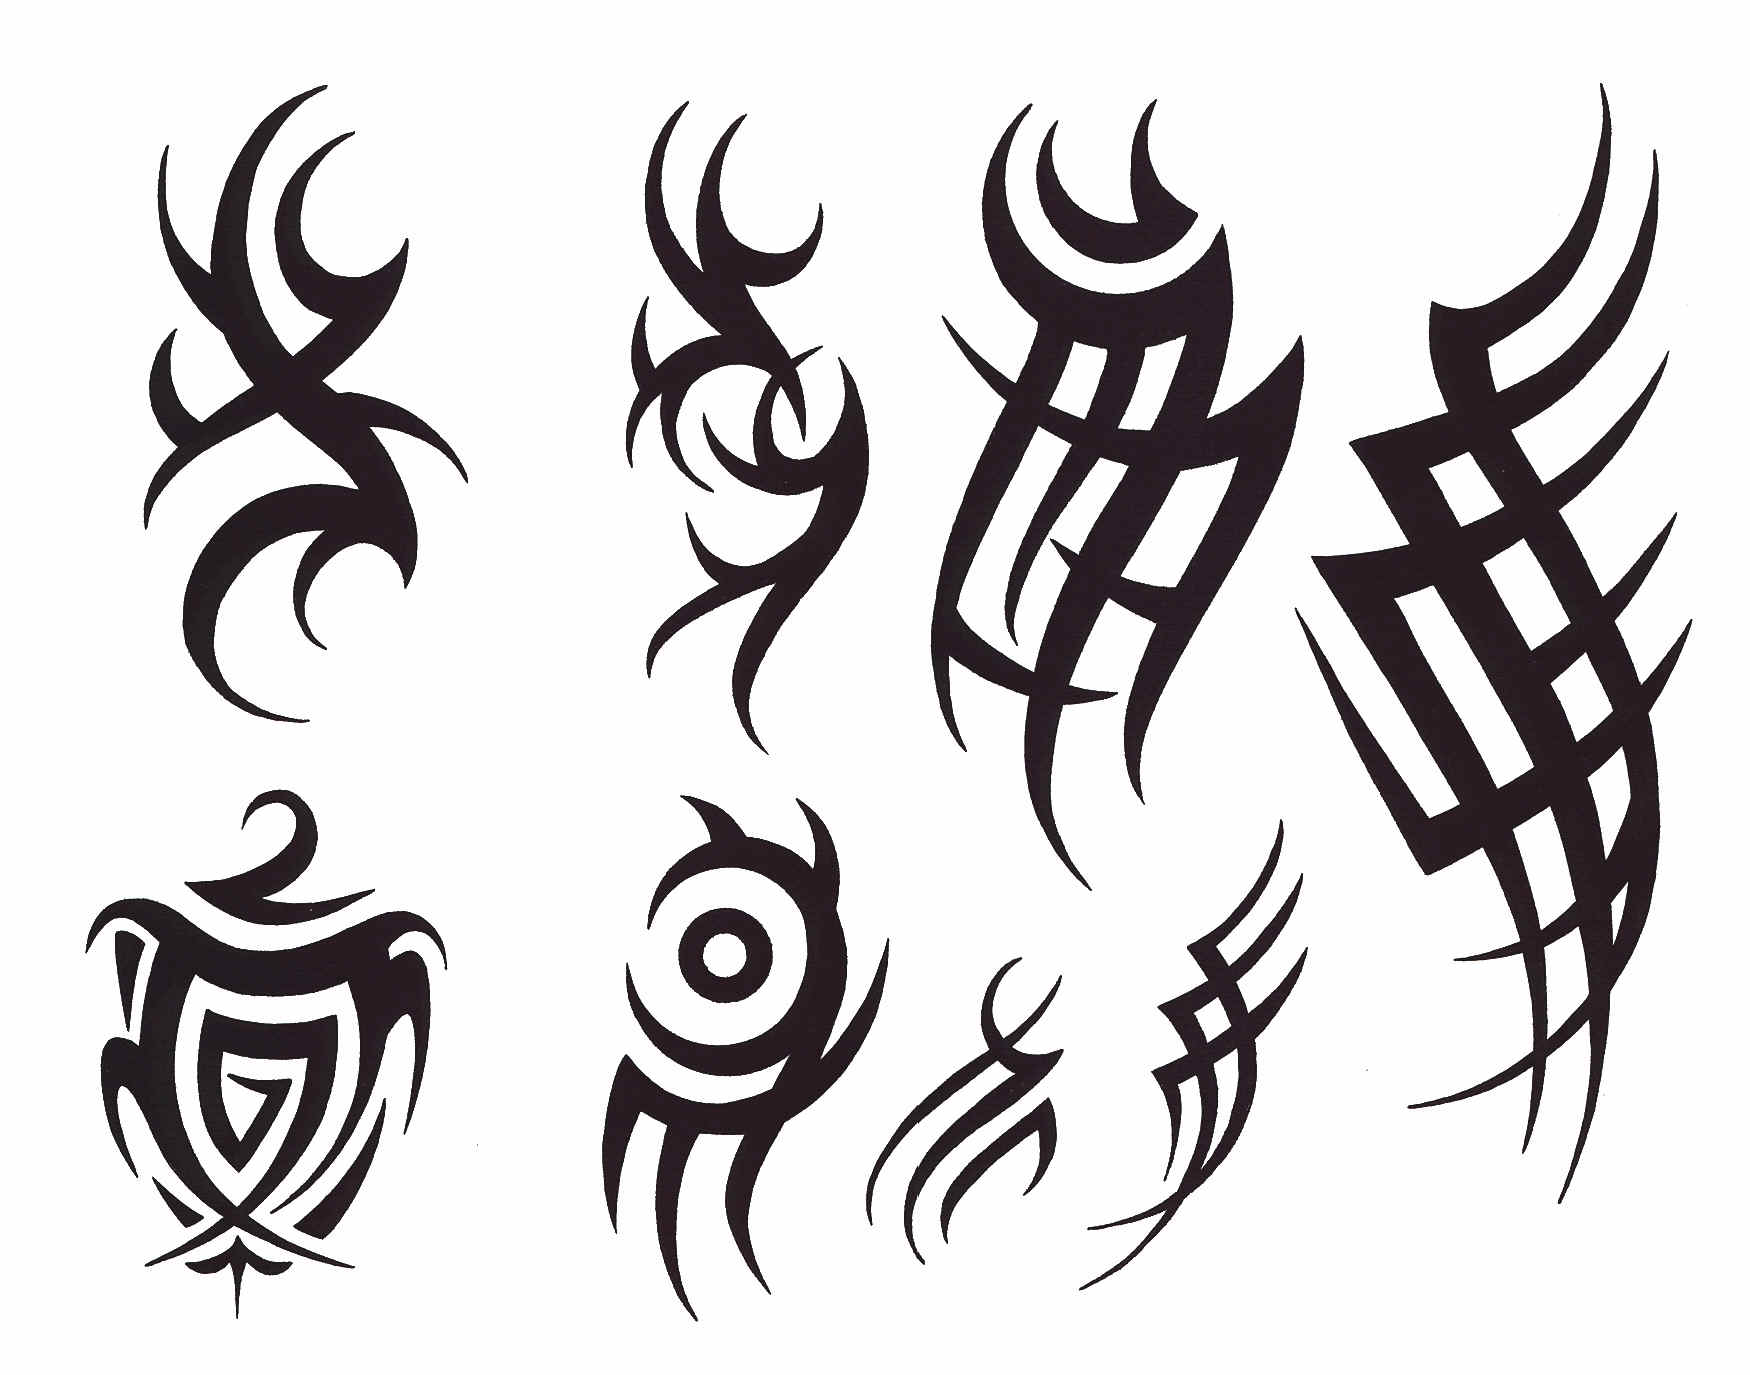 designs tattoo free sleeve tribal Free Tattoo Design Tattoo Designs Tattoos Tribal Tribal Free